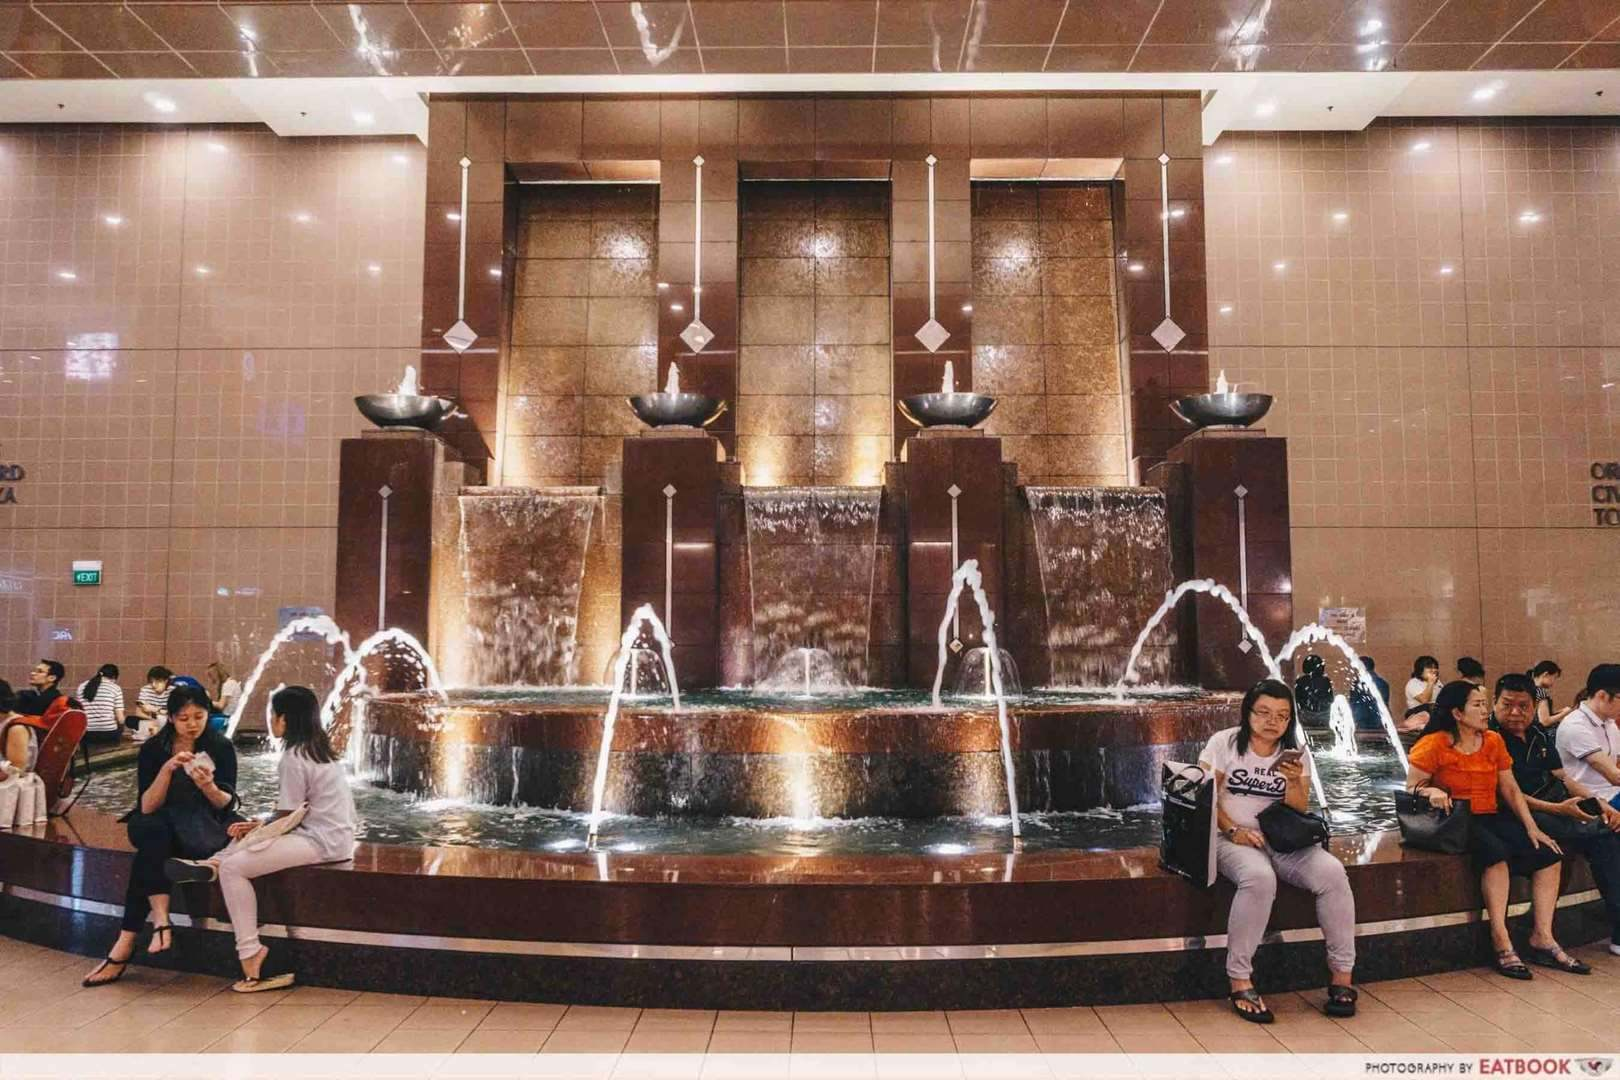 Takashimaya Food Hall Fountain